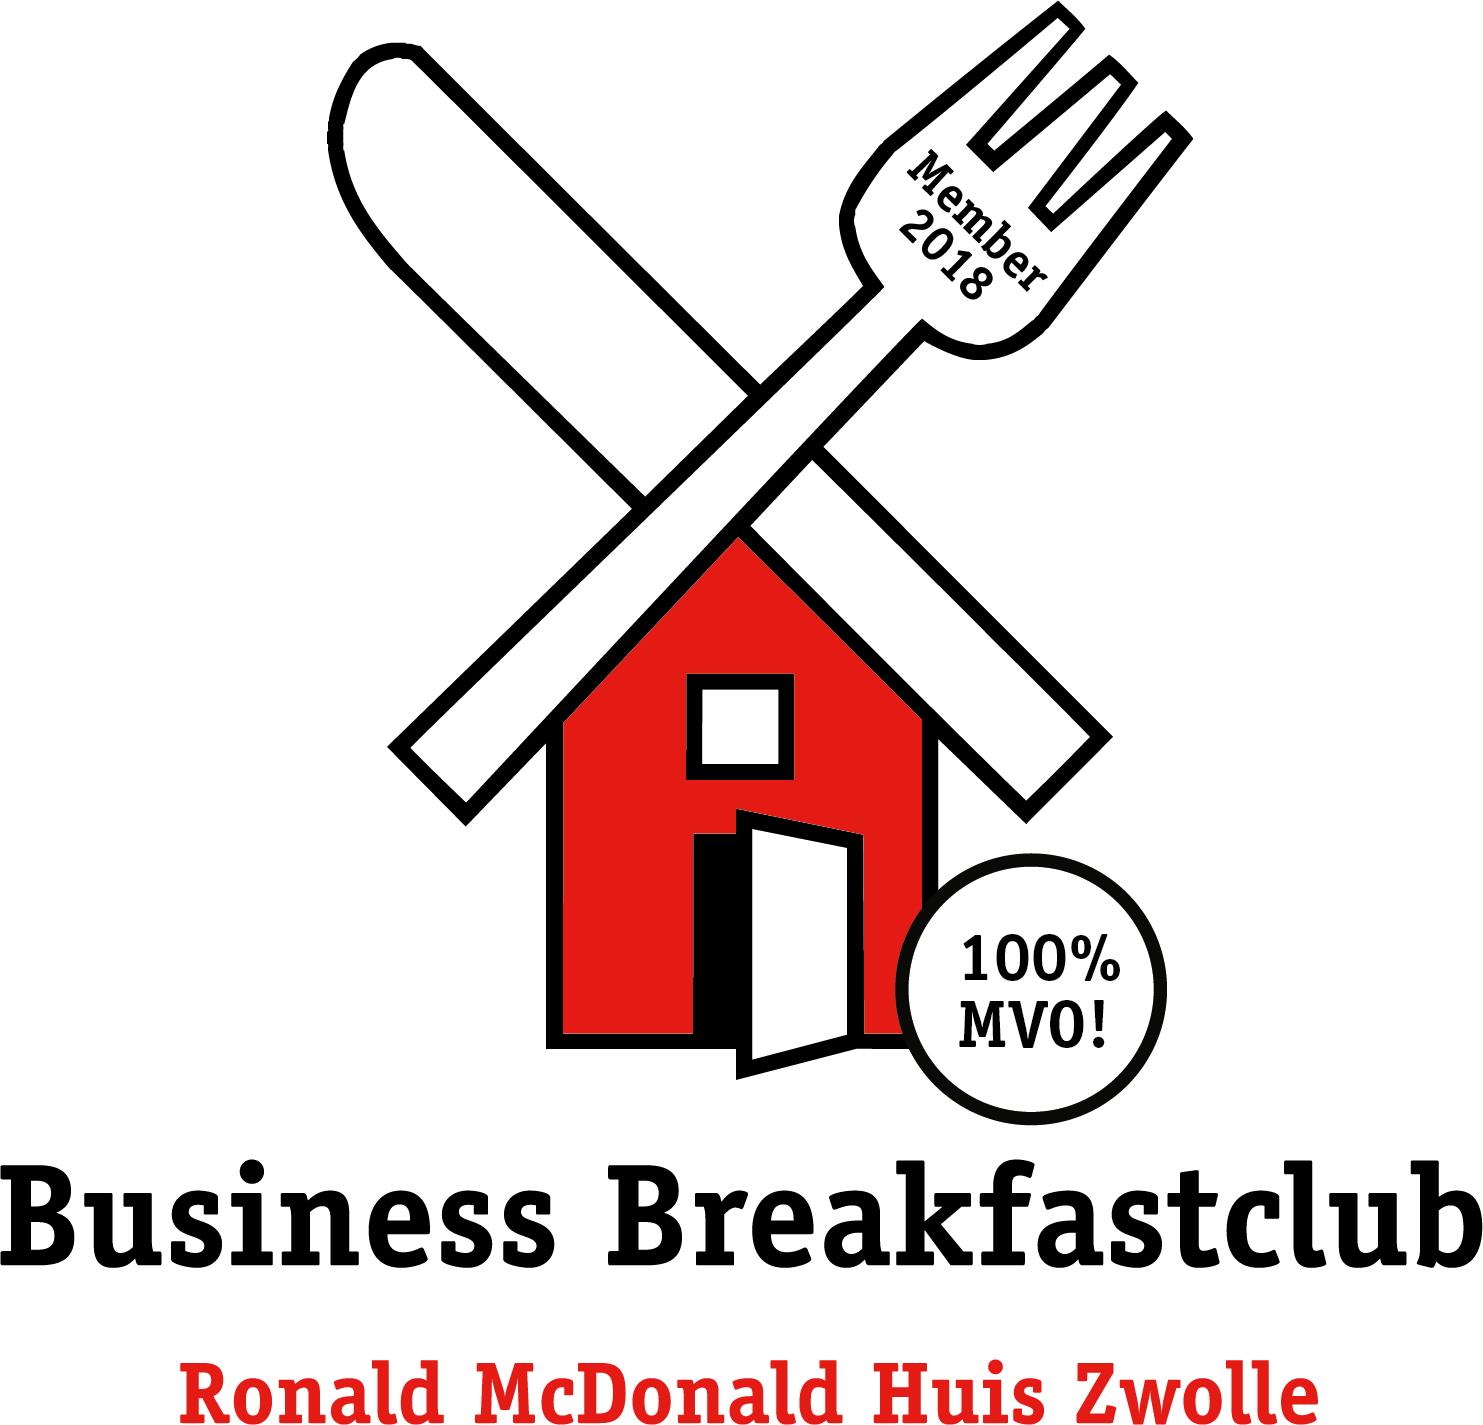 Loto Business Breakfastclub Ronald Mac Donald Huis